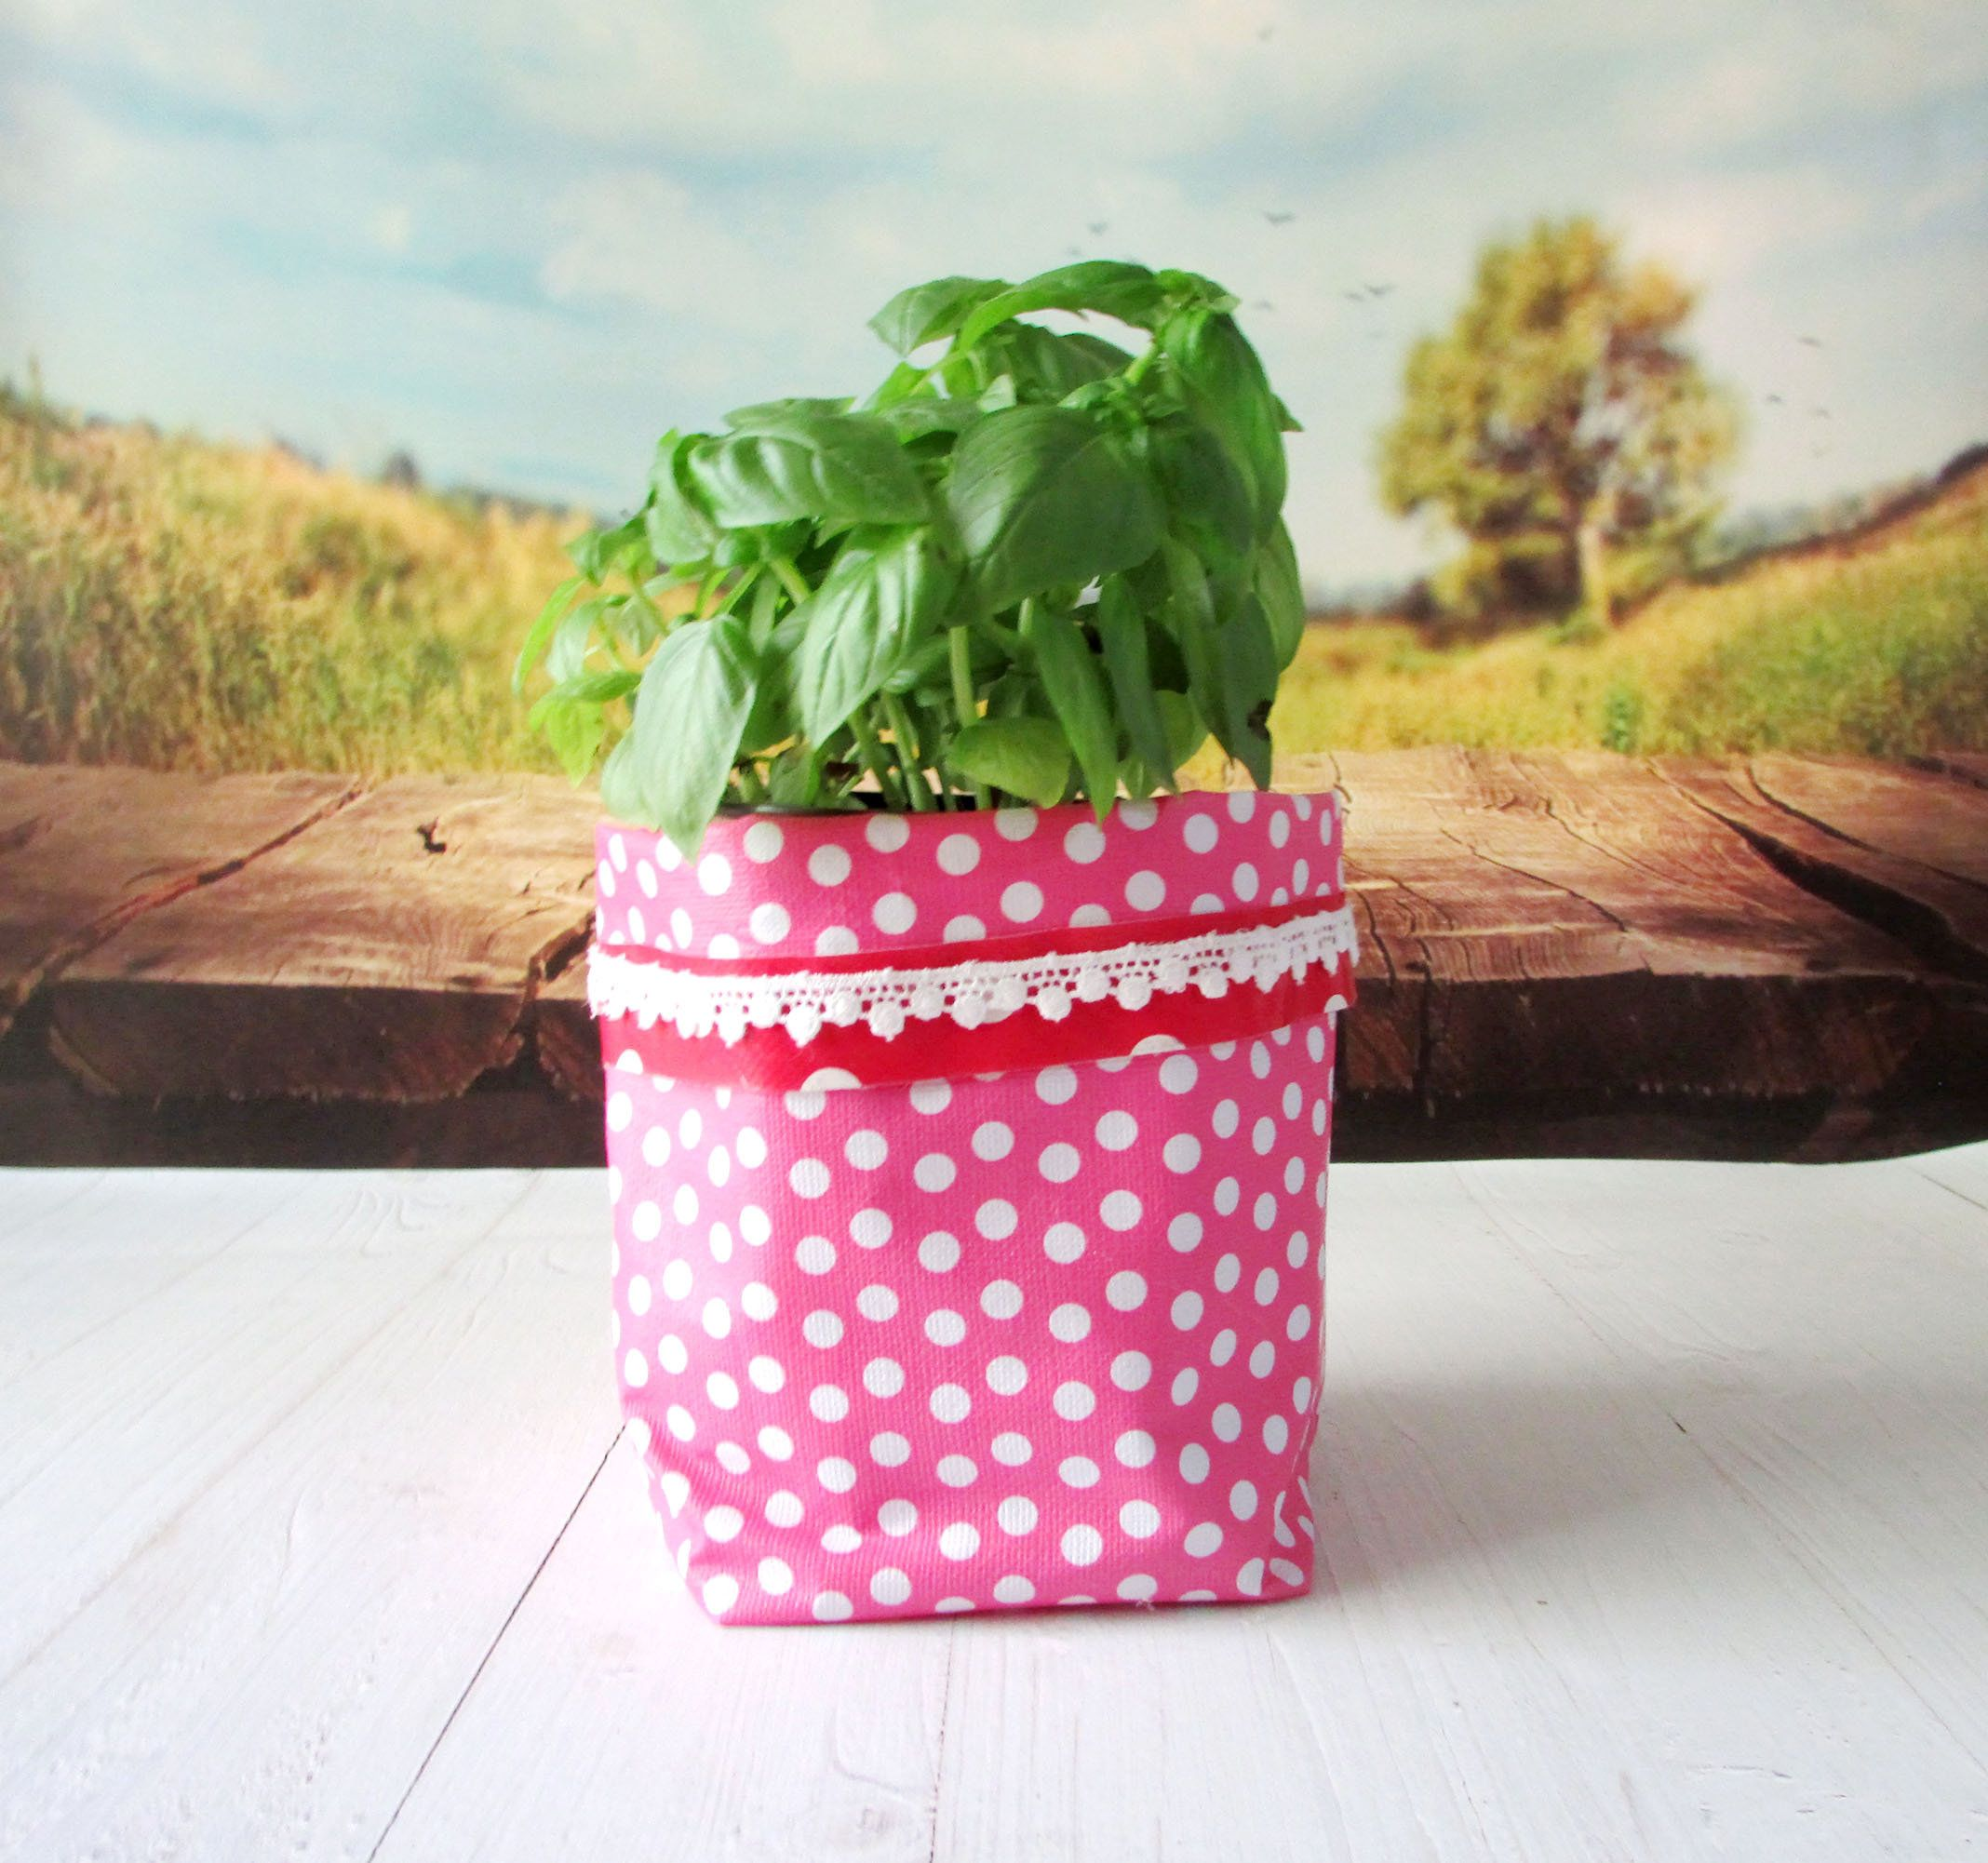 Flower Pot Planters Flowers Potted Basil Seasoning Small Pink